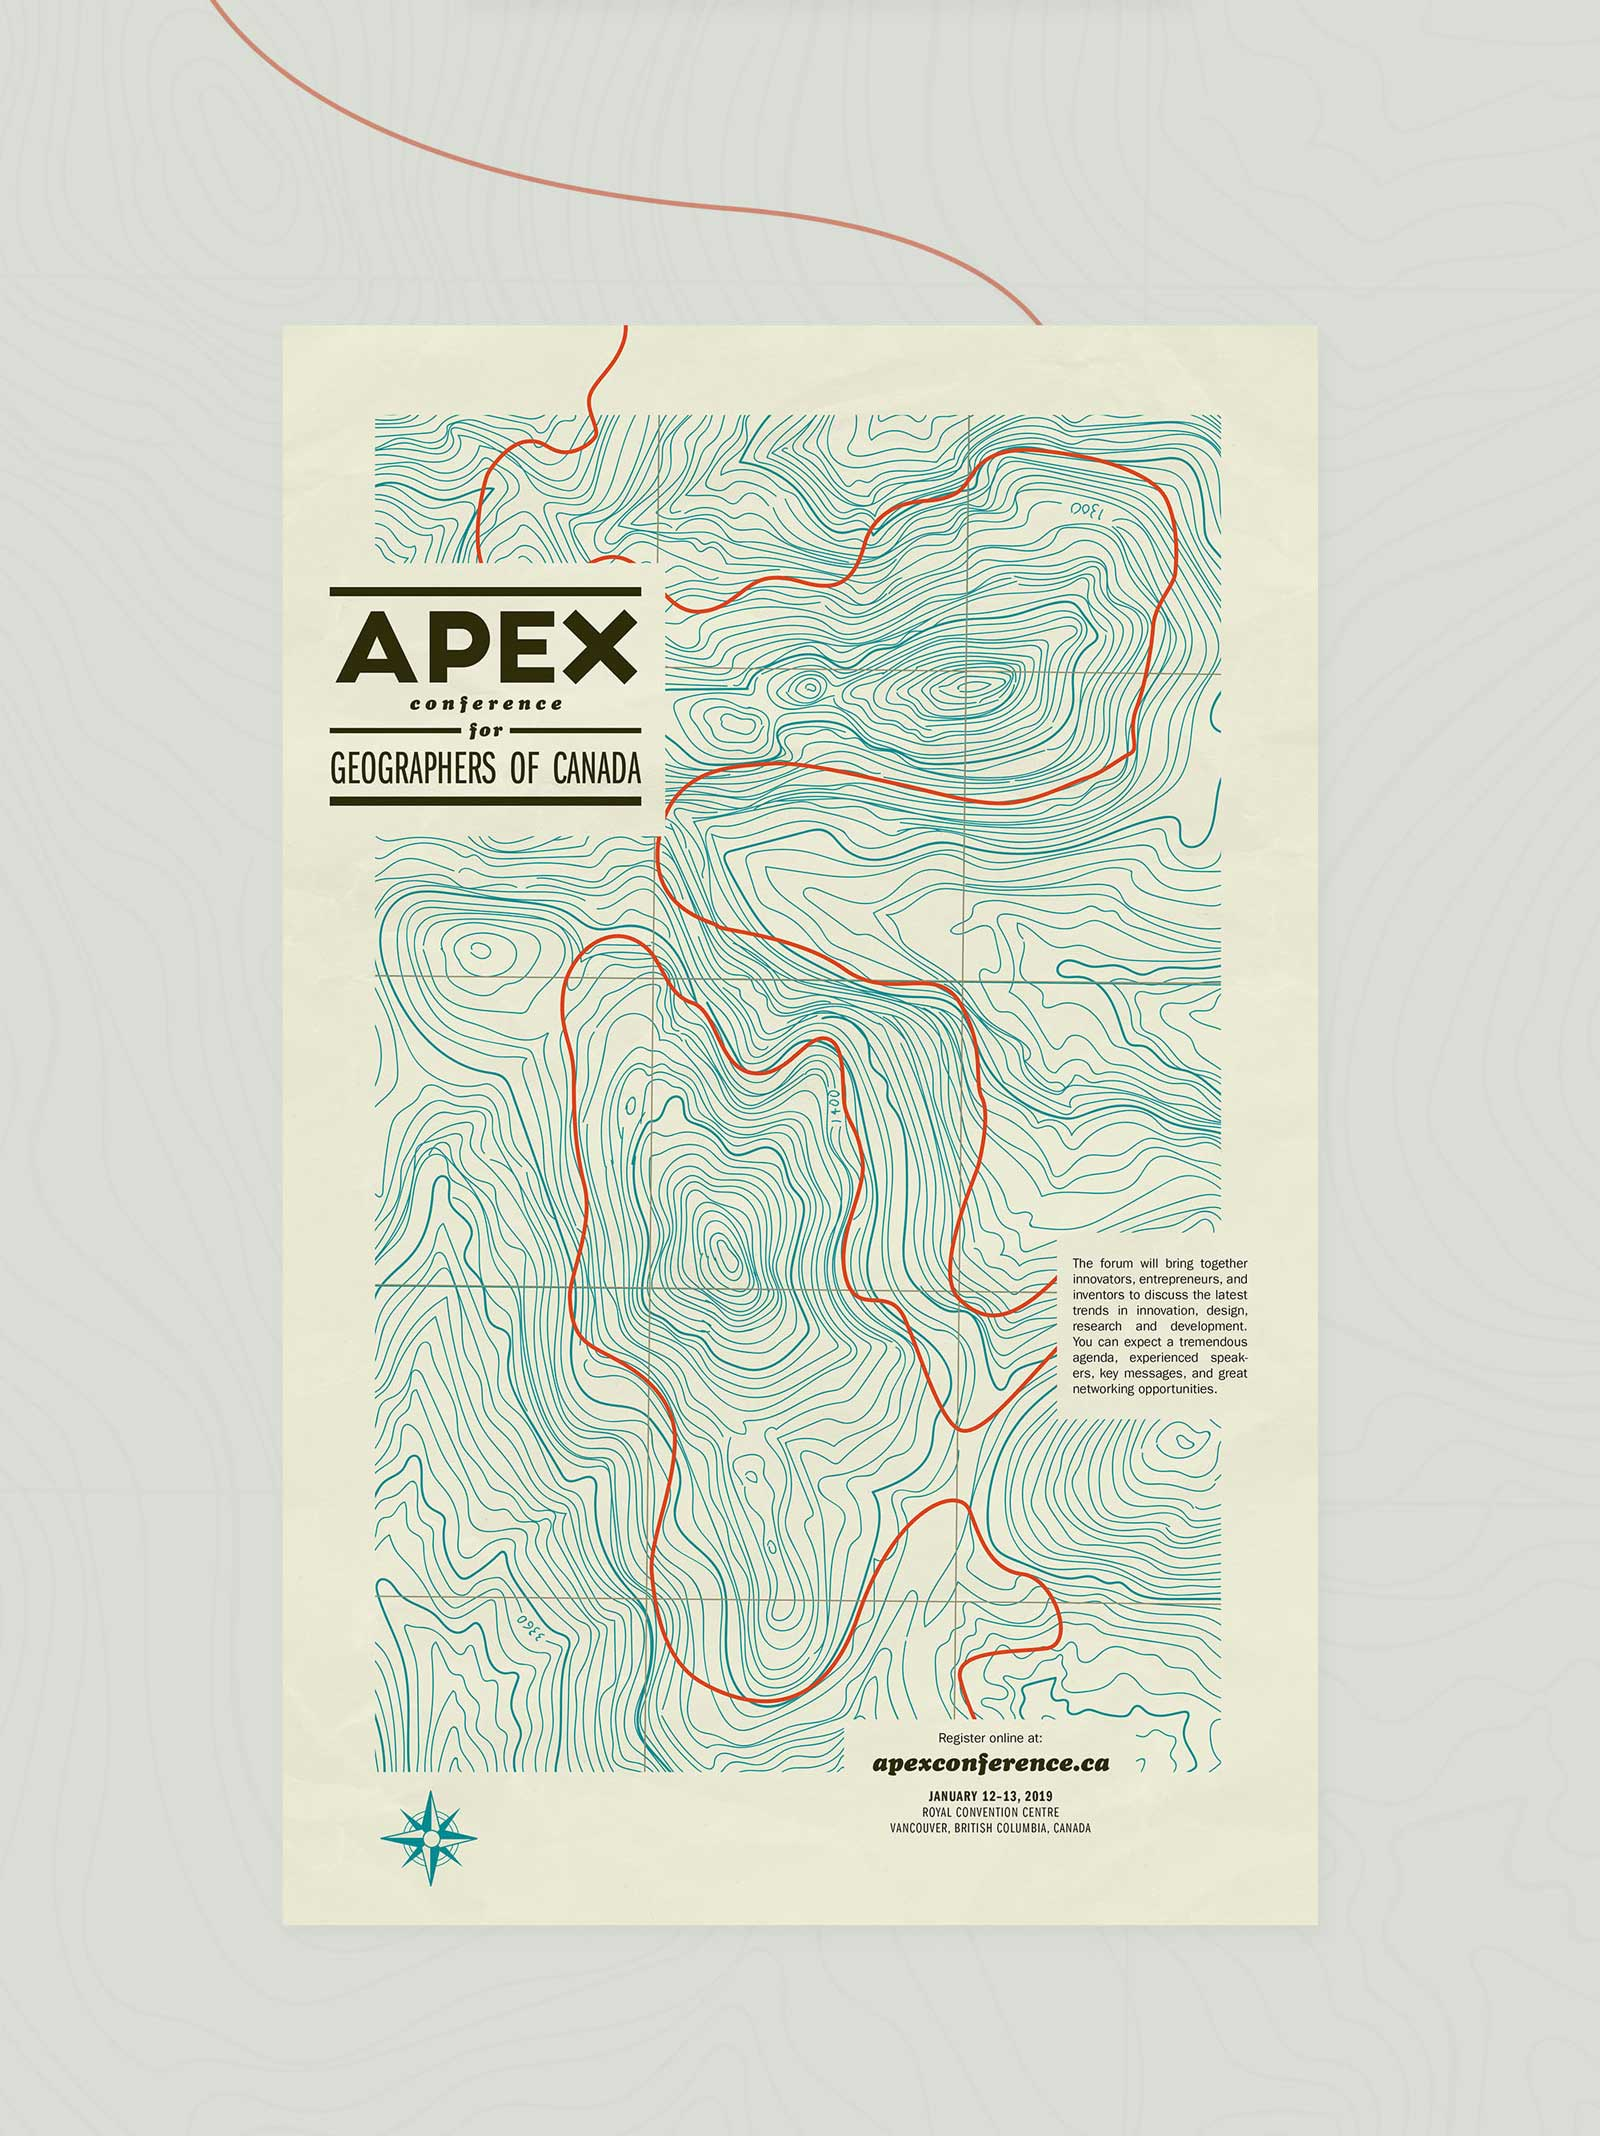 Apex Conference poster and brochure design